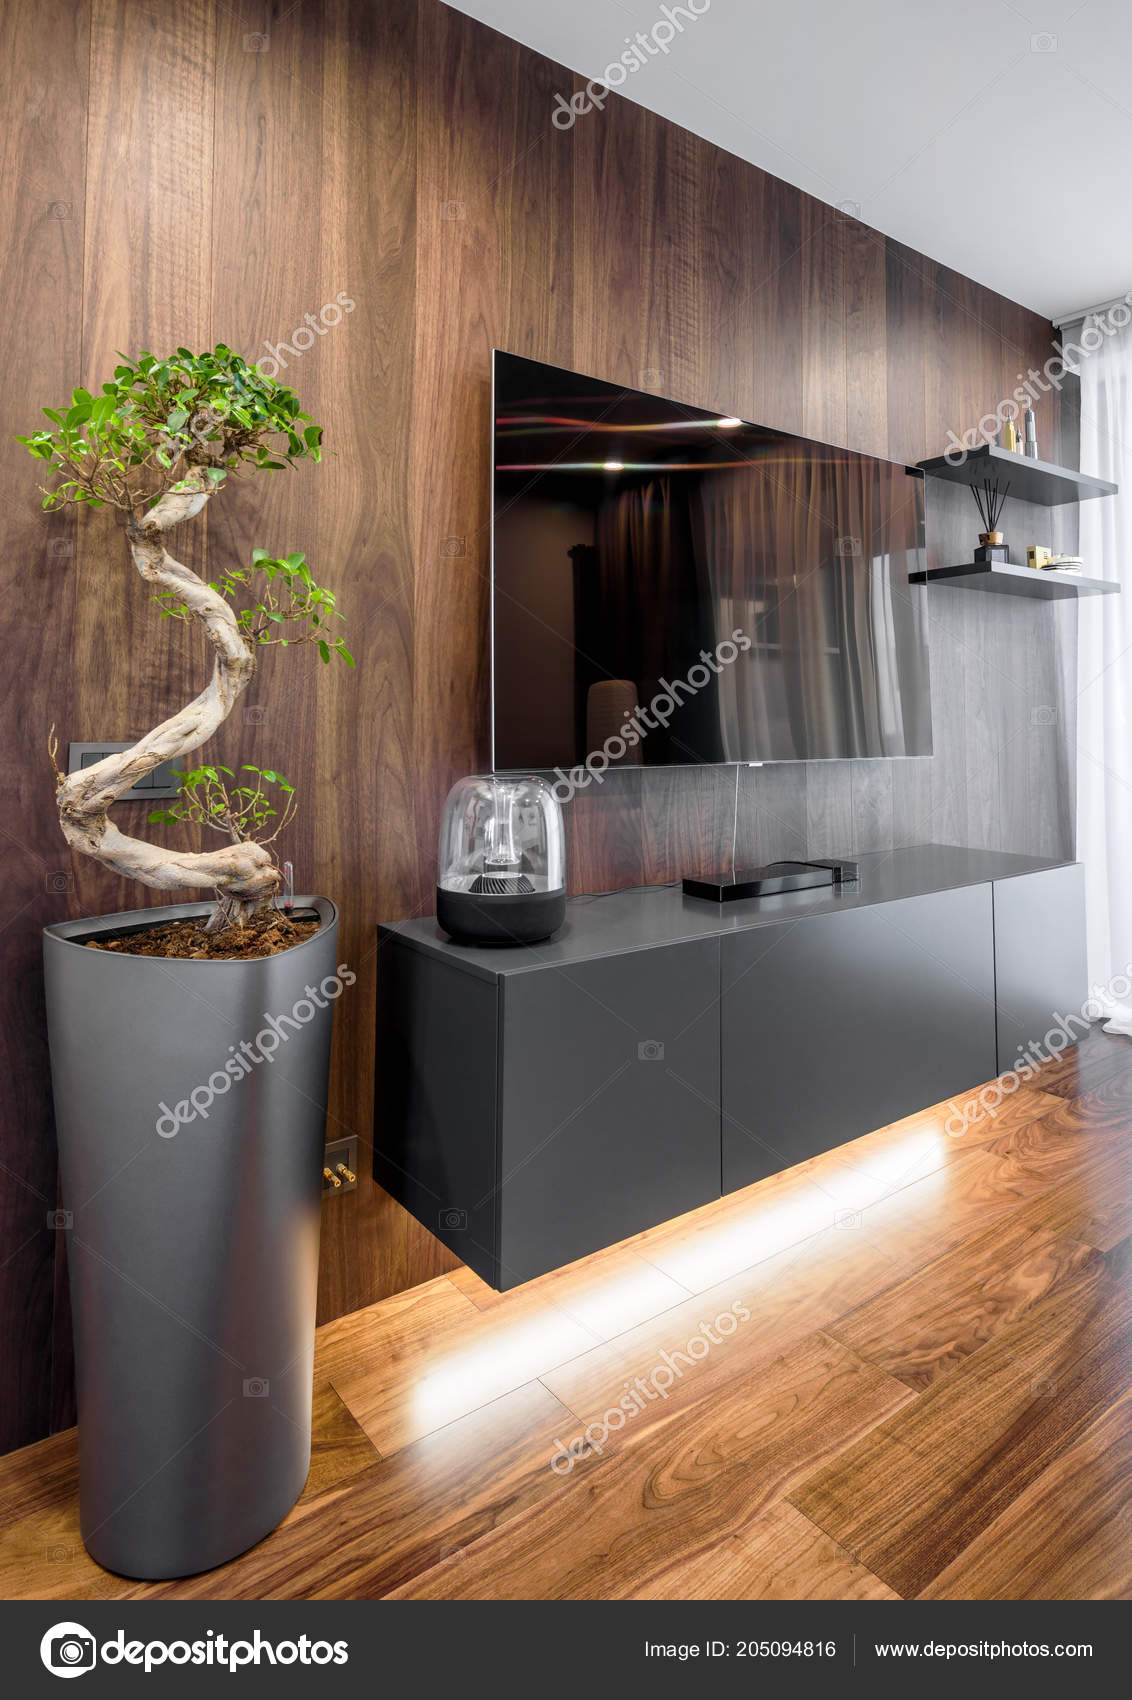 Moscow March 2018 Modern Stylish Home Interior Flower Wood ... on natural wood exterior paint color, natural wood interior design, natural wood kitchen ideas, natural wood texture background,